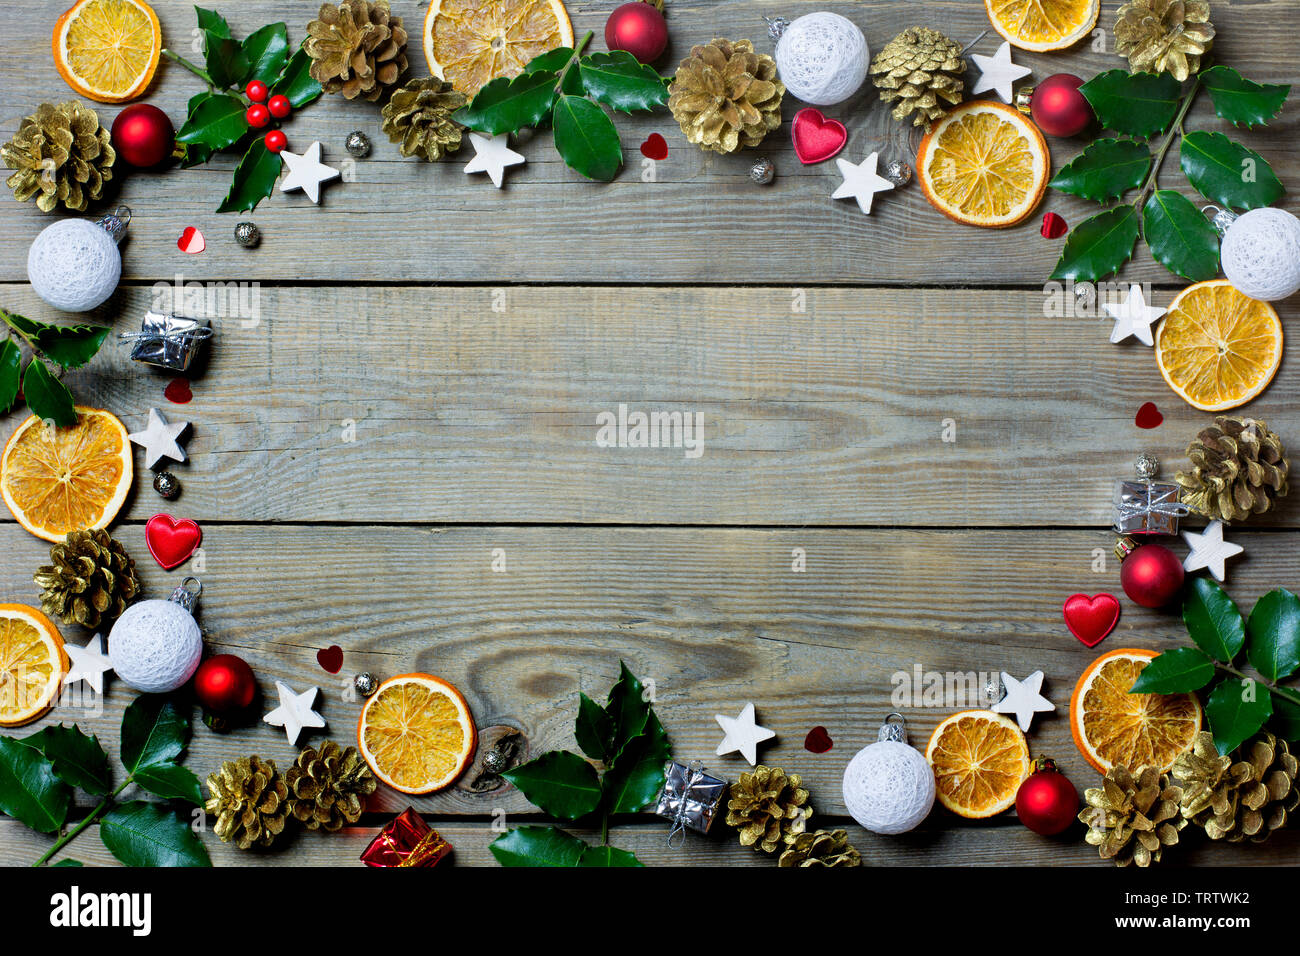 Christmas composition with orange slices, cones, holy, stars, small gift boxes, red and white baubles and hearts on wooden background - Stock Image